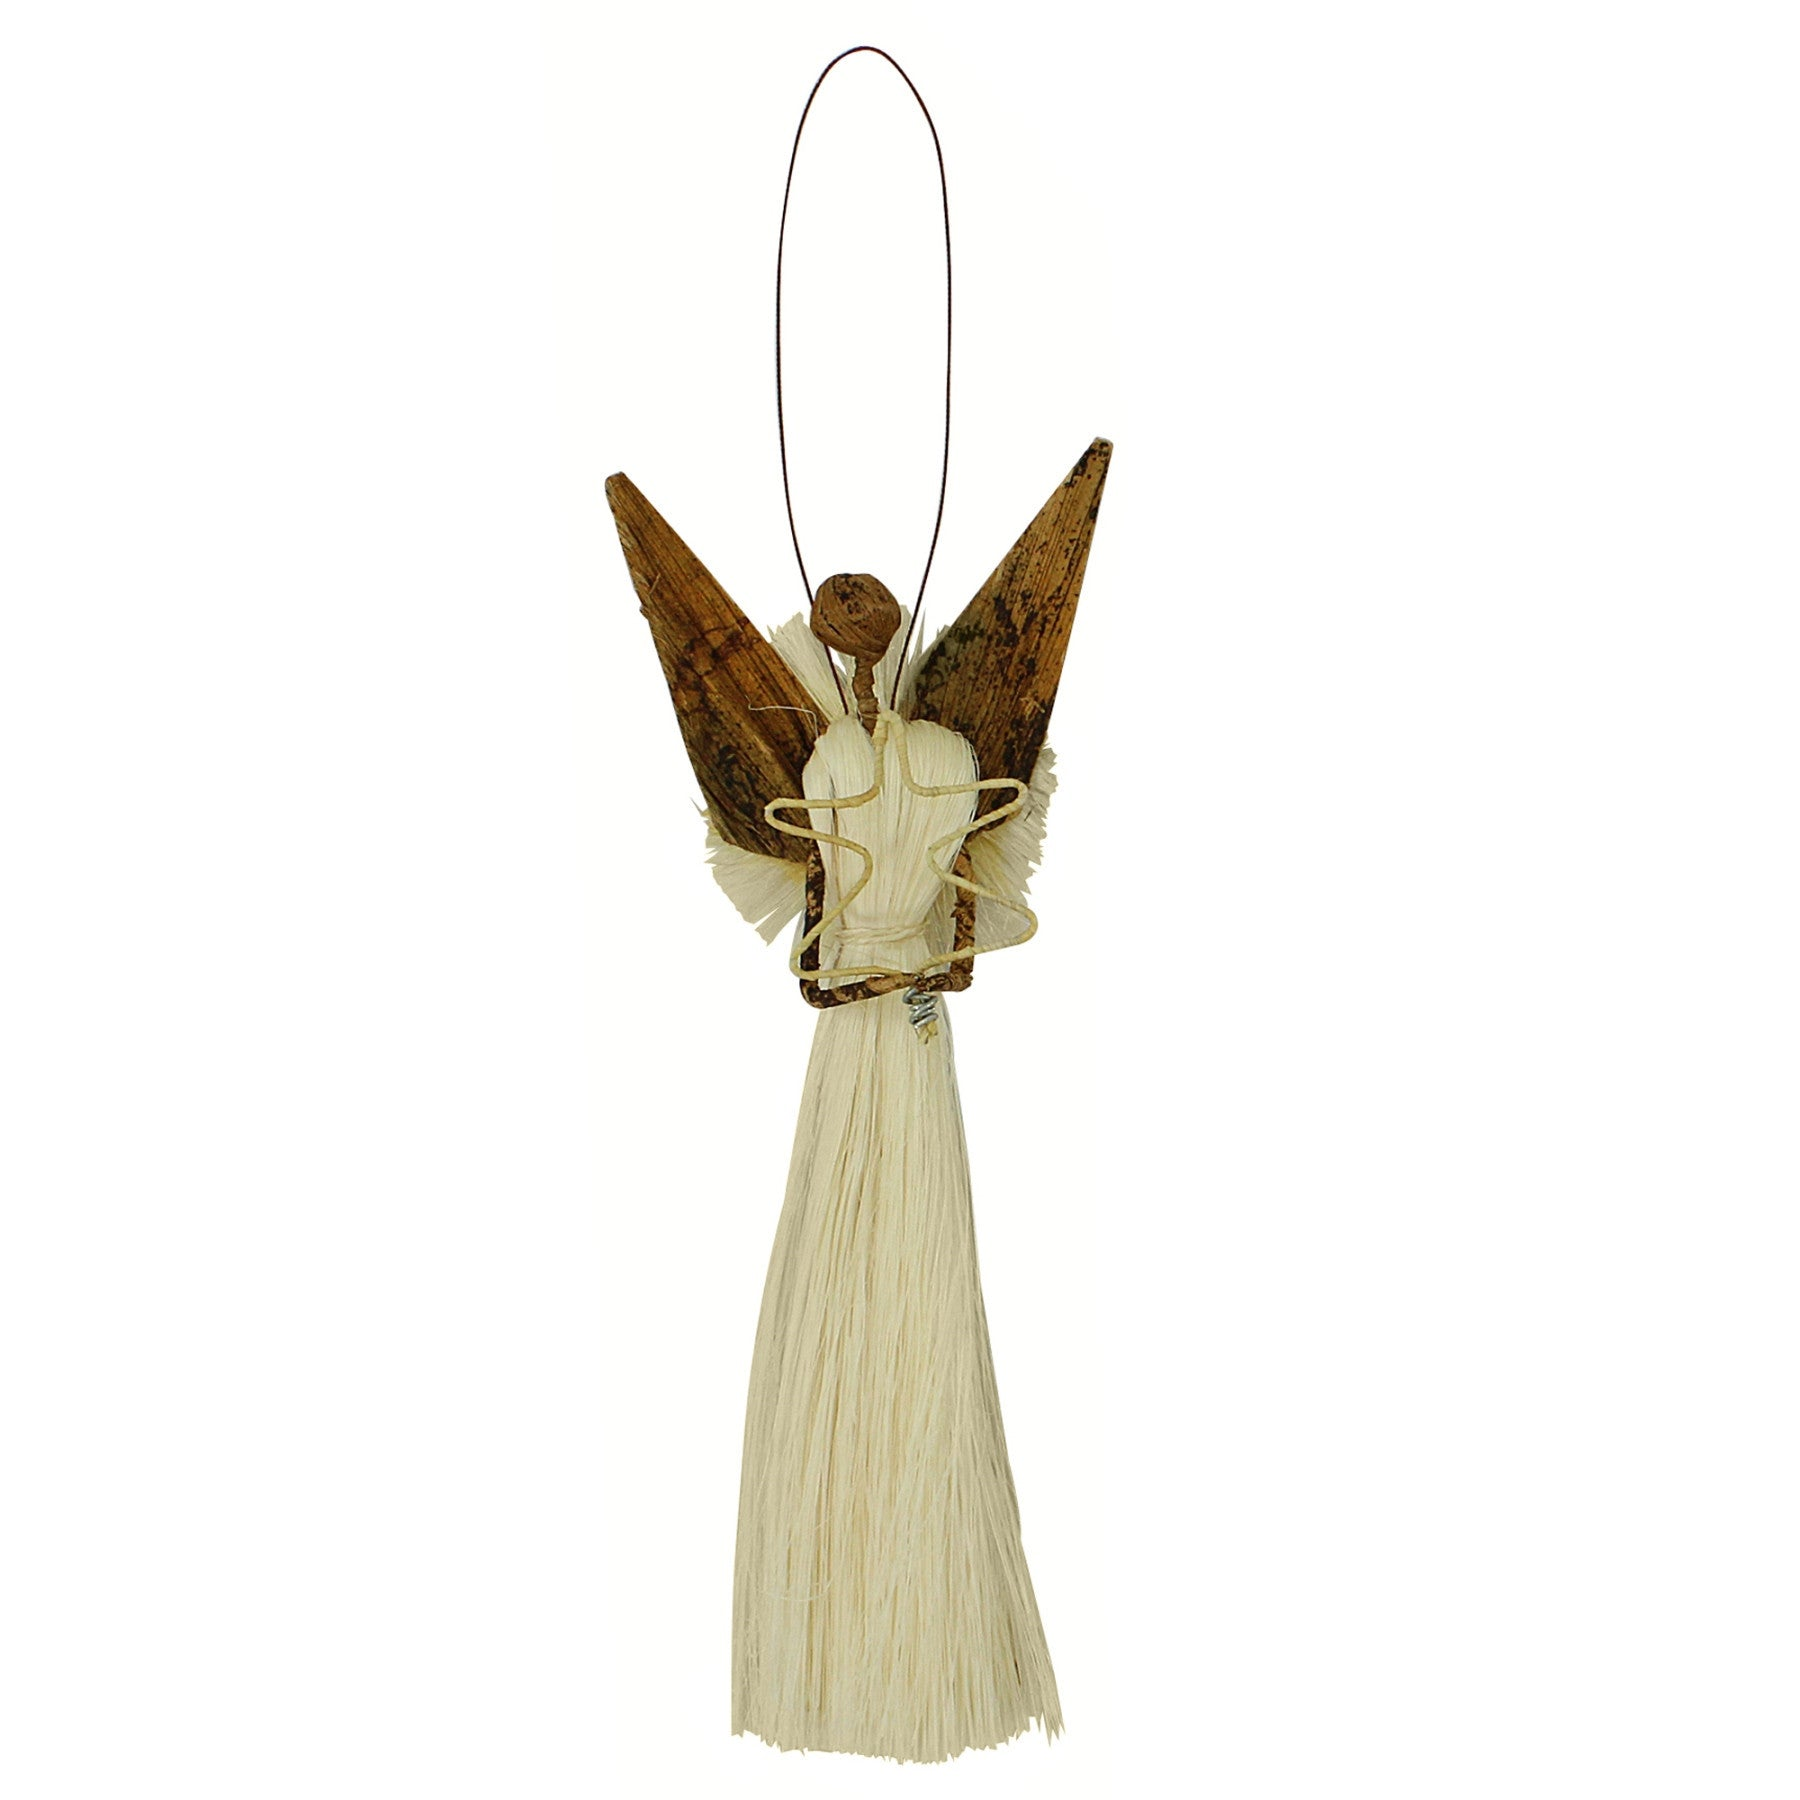 Angel Ornaments For Christmas Tree.Kenyan Banana Fiber Sisal Angel Ornament Xmas Tree The